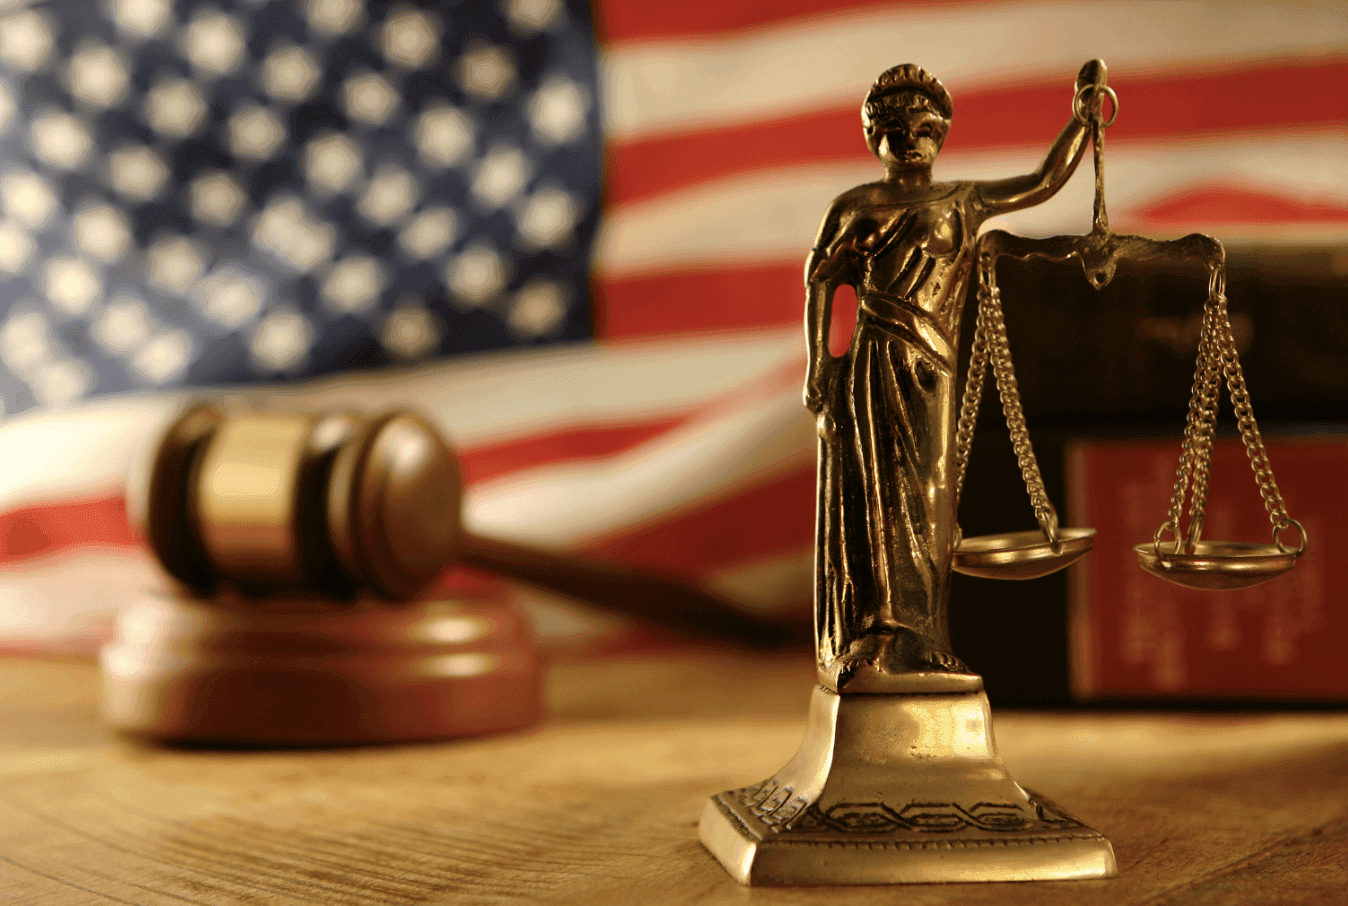 The U.S. Legal System involves the judiciary branch, which deals with judges and courts